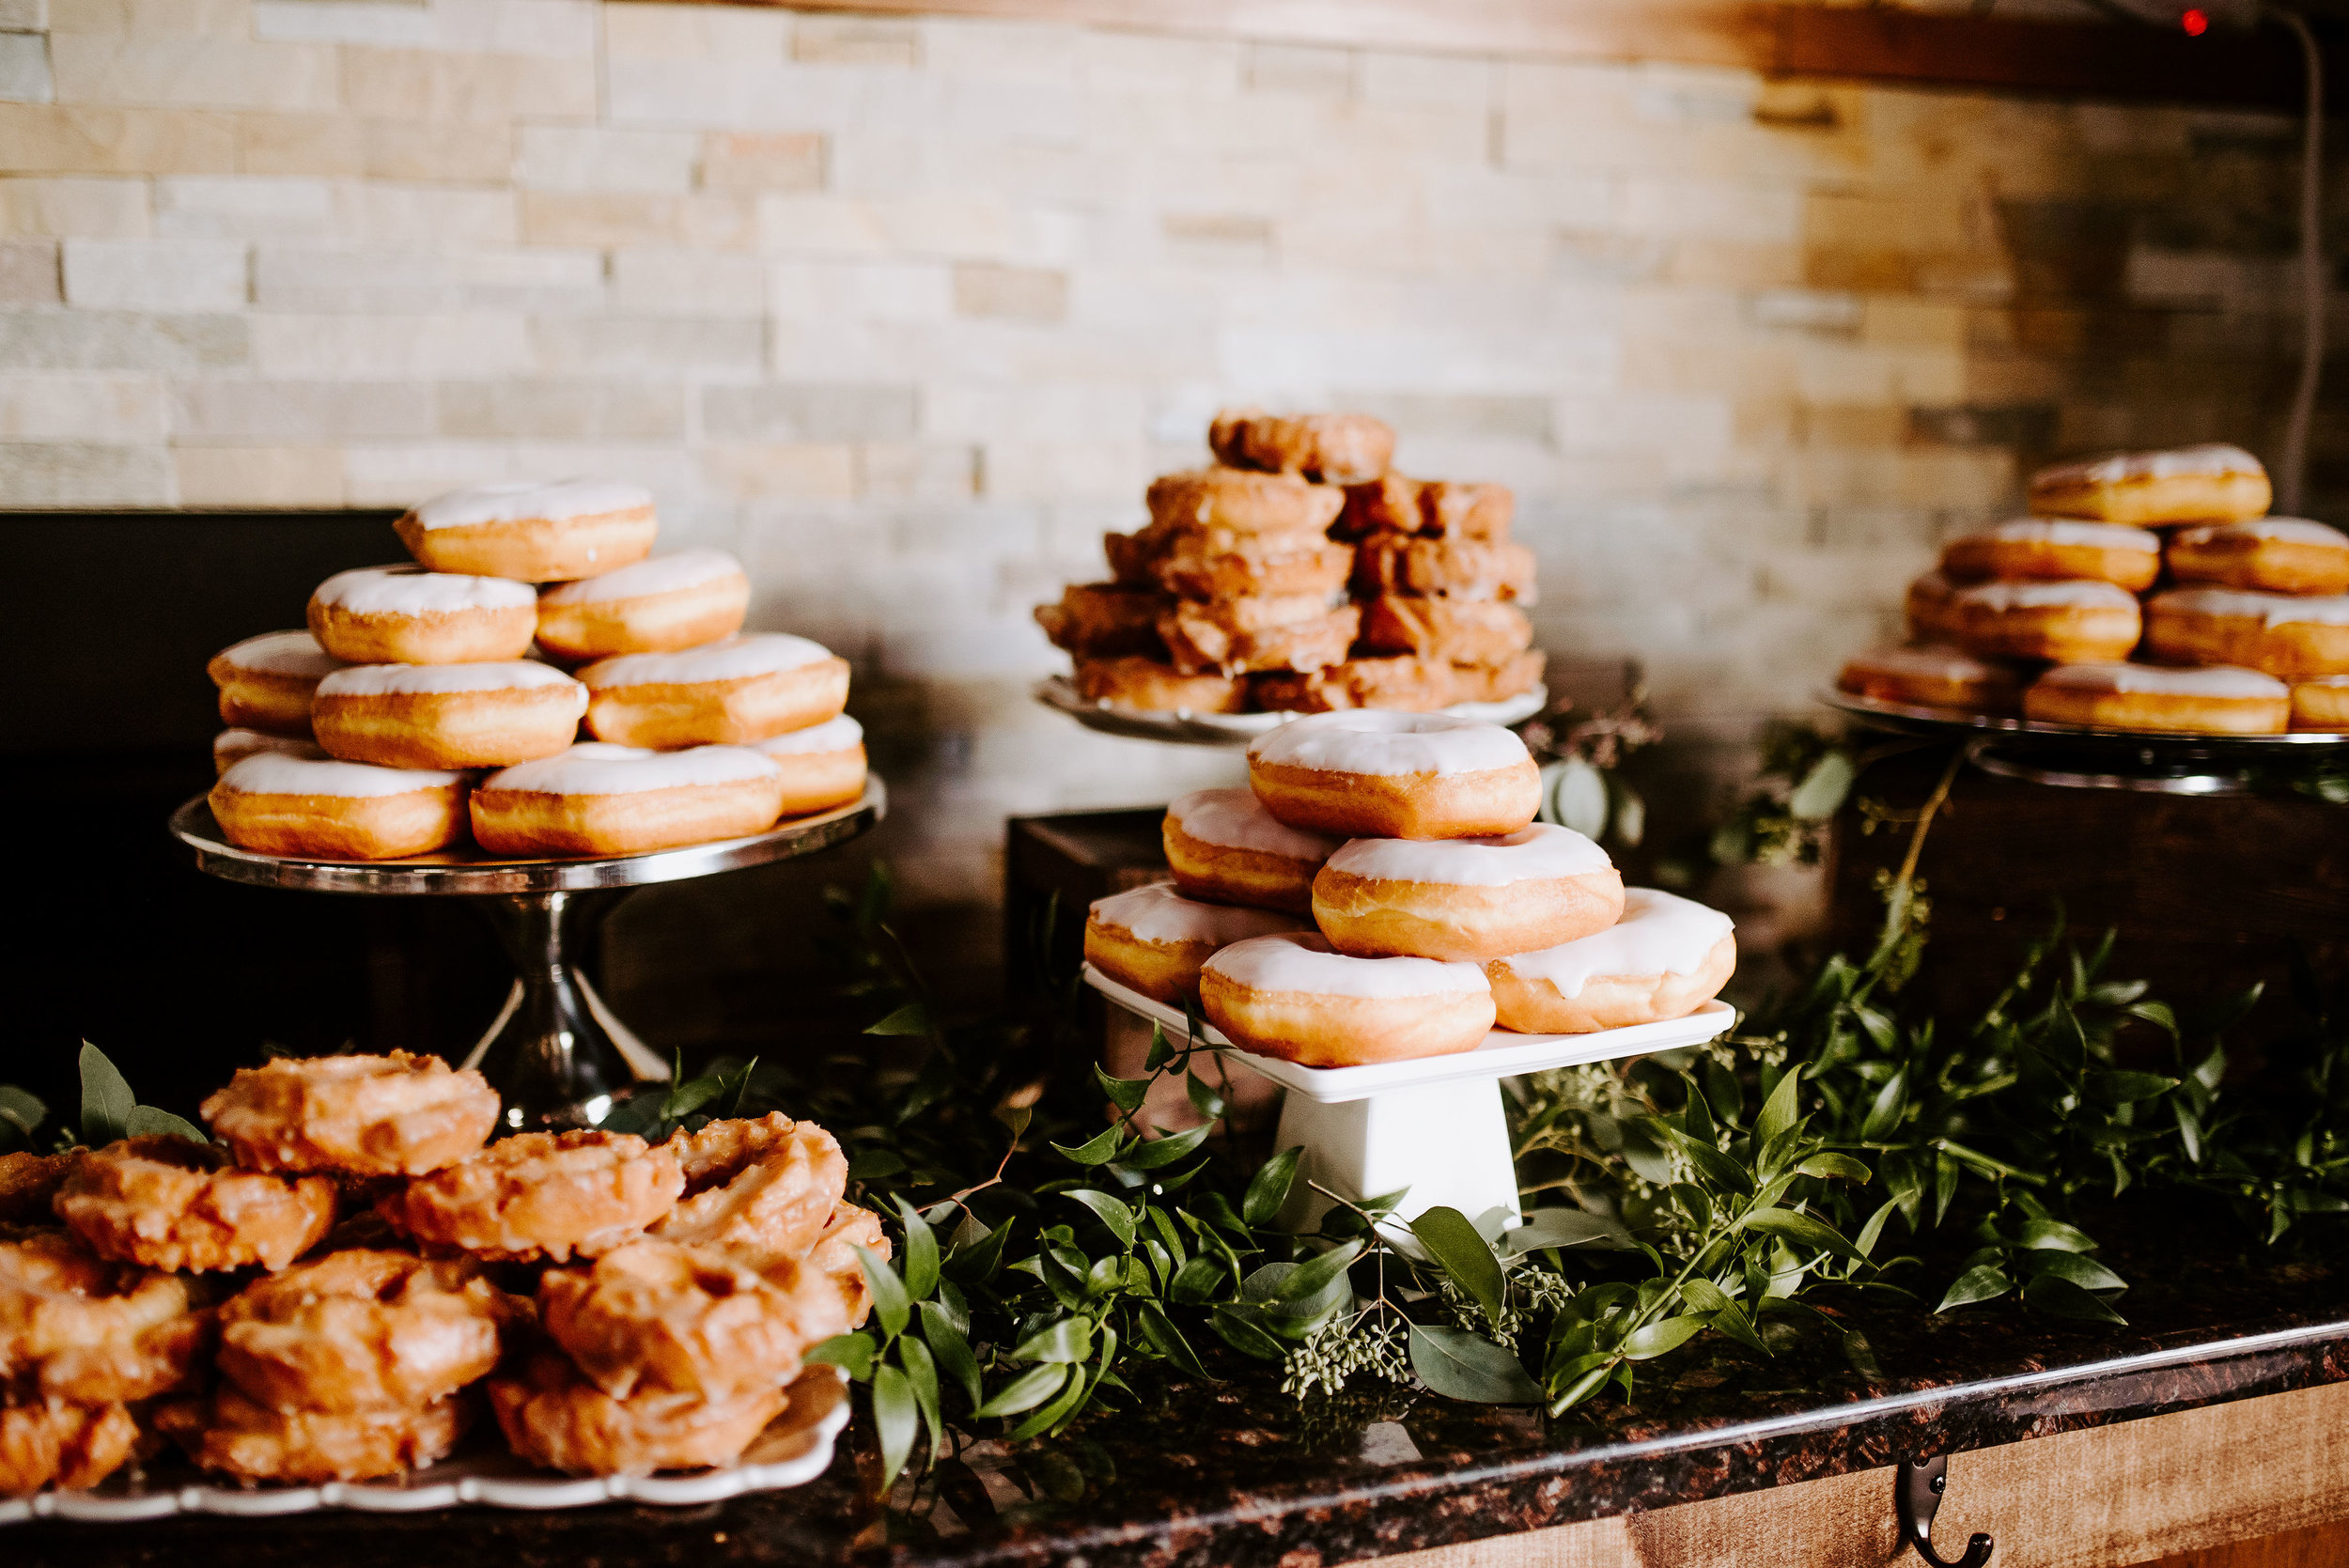 Winehaven-Winery-Wedding-Reception-Donuts-Minneapolis-MN.jpg